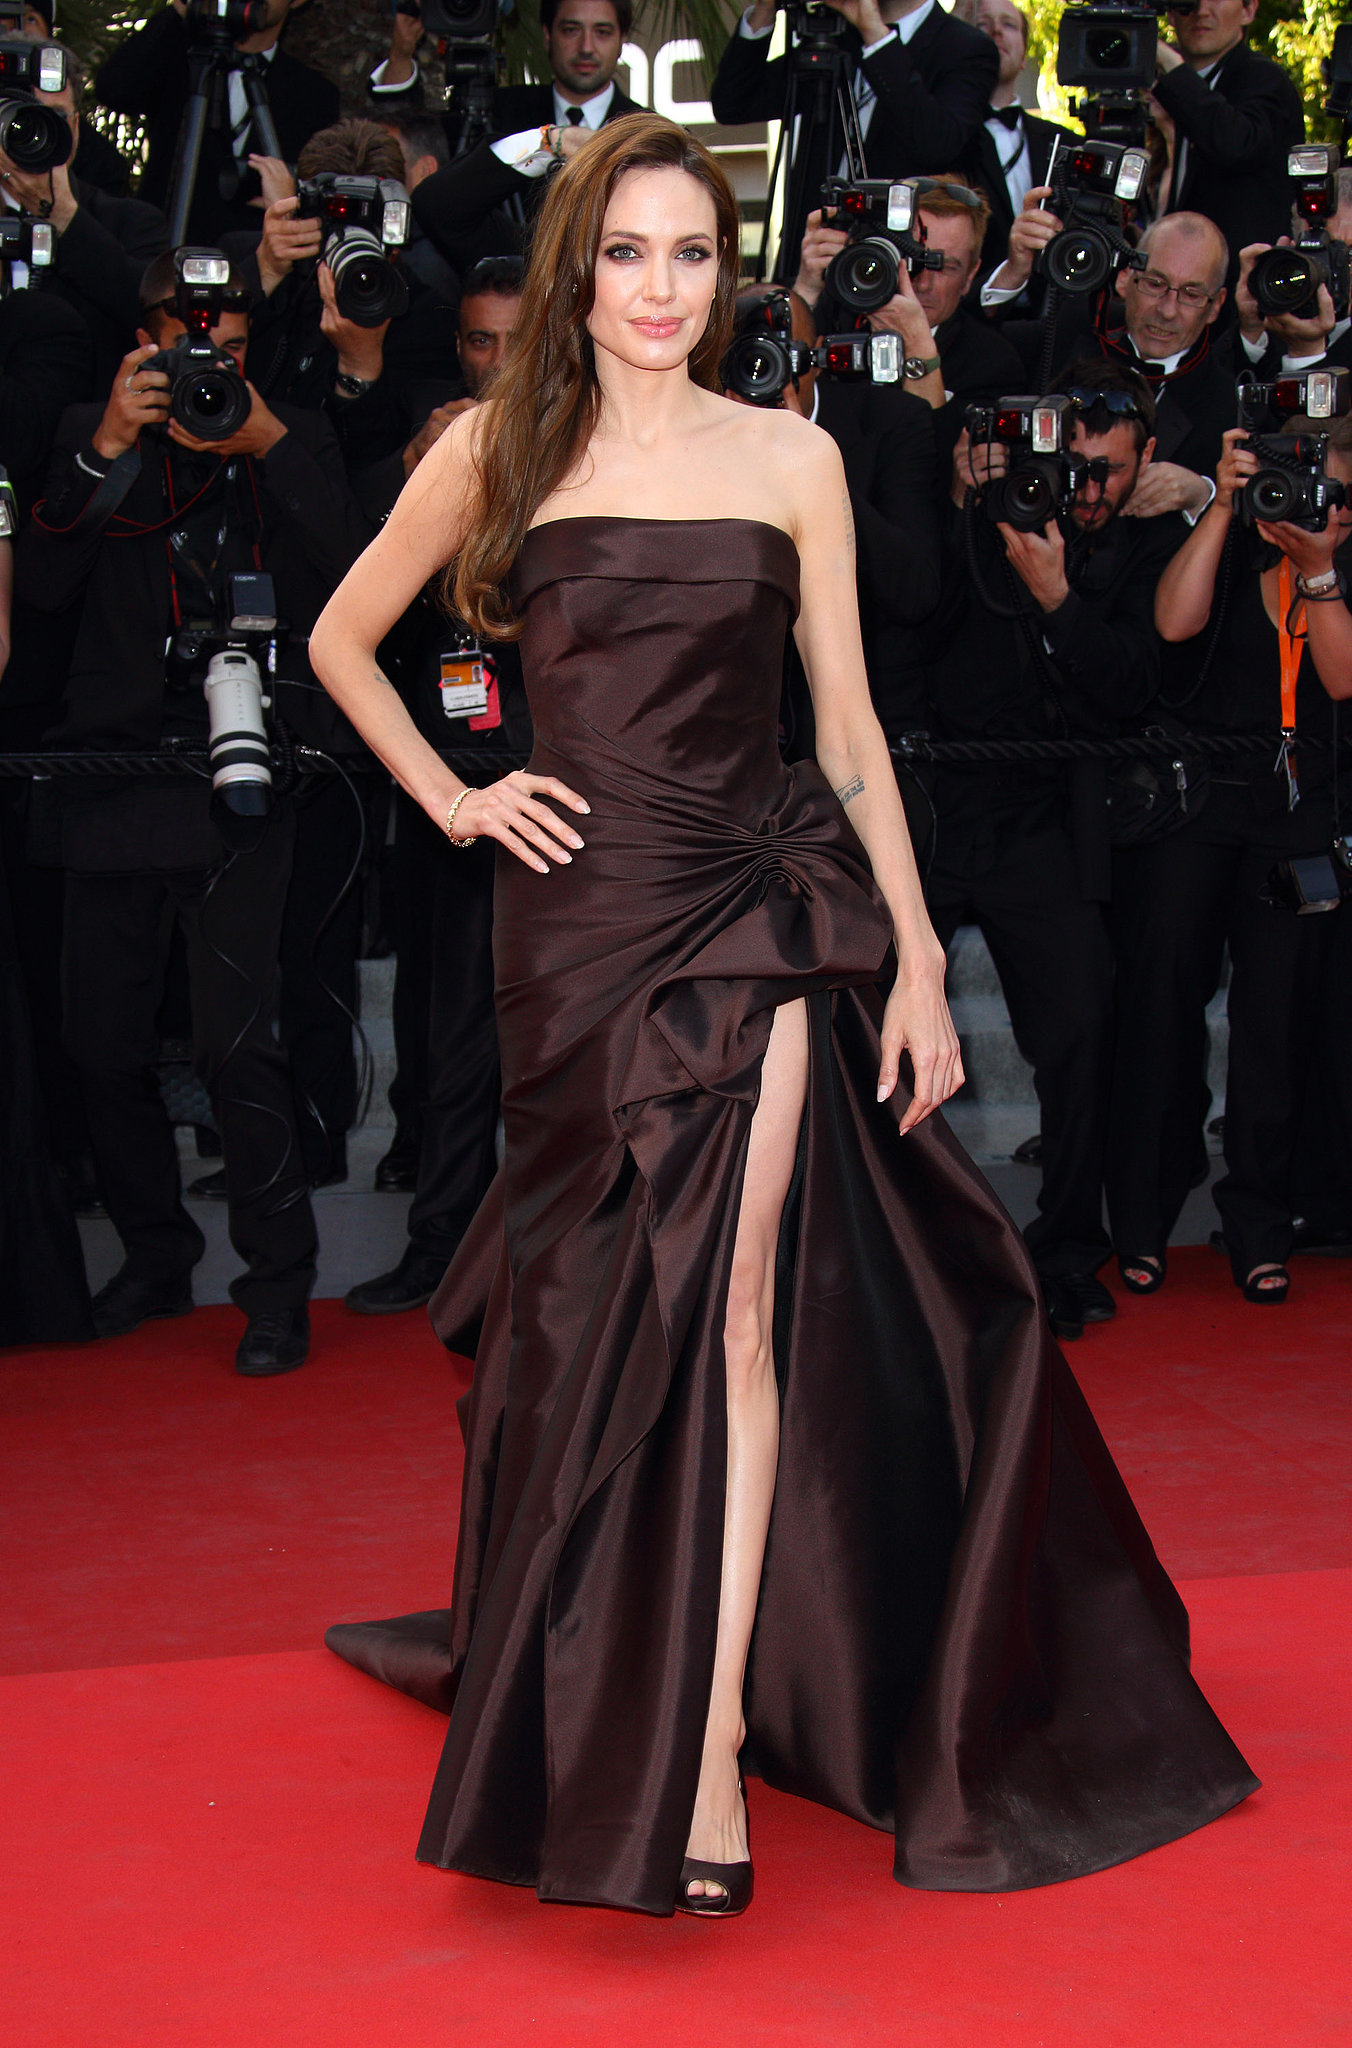 Angelina jolie red carpet dresses - photo#13